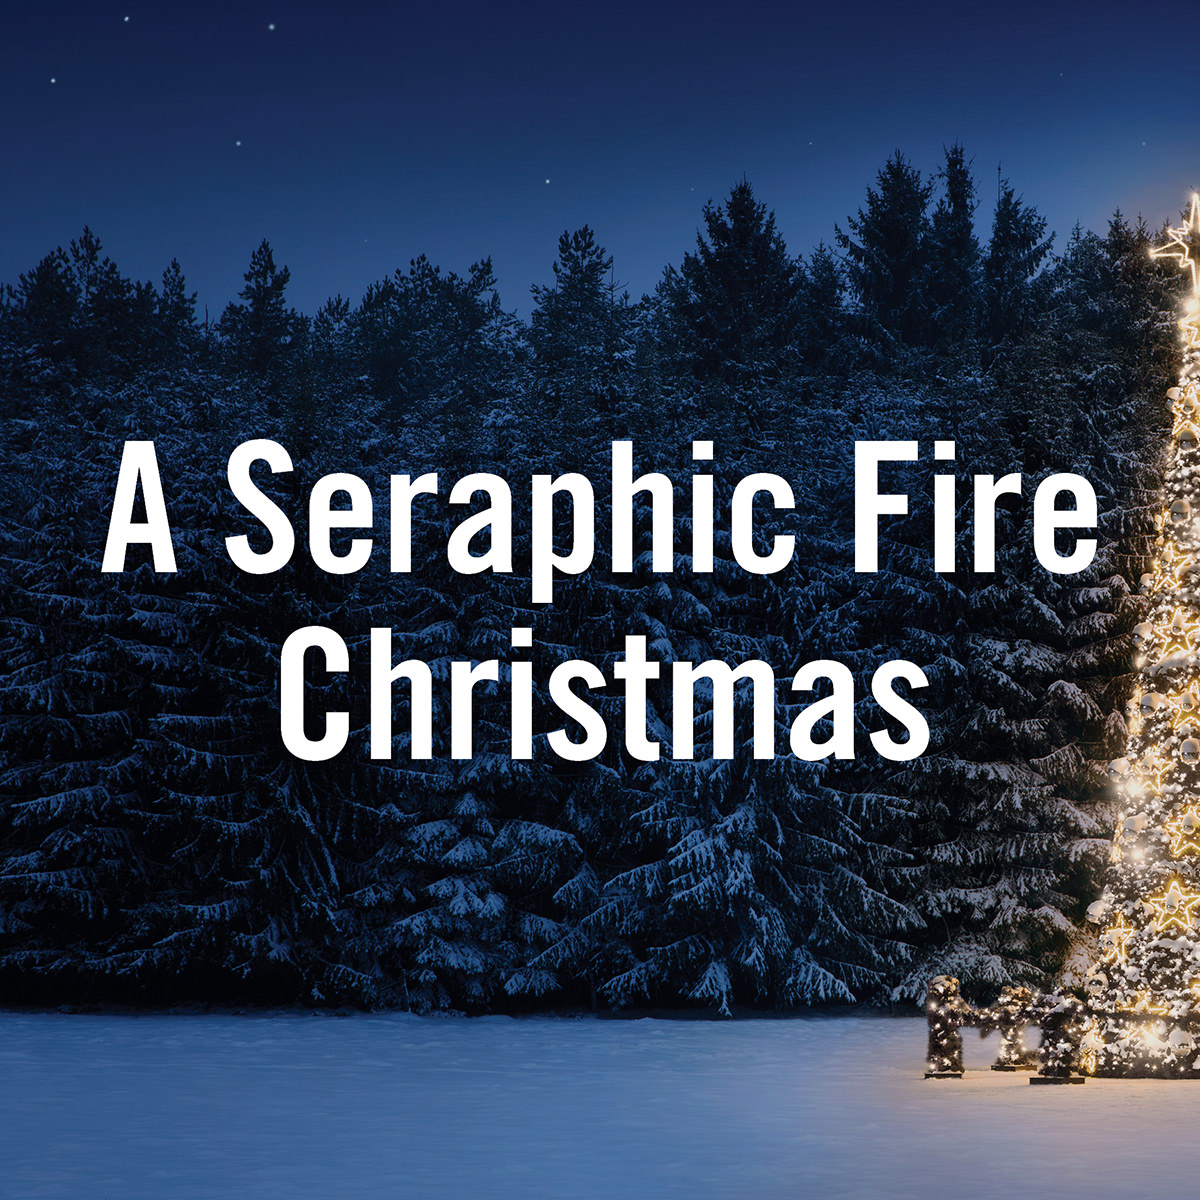 A Seraphic Fire Christmas